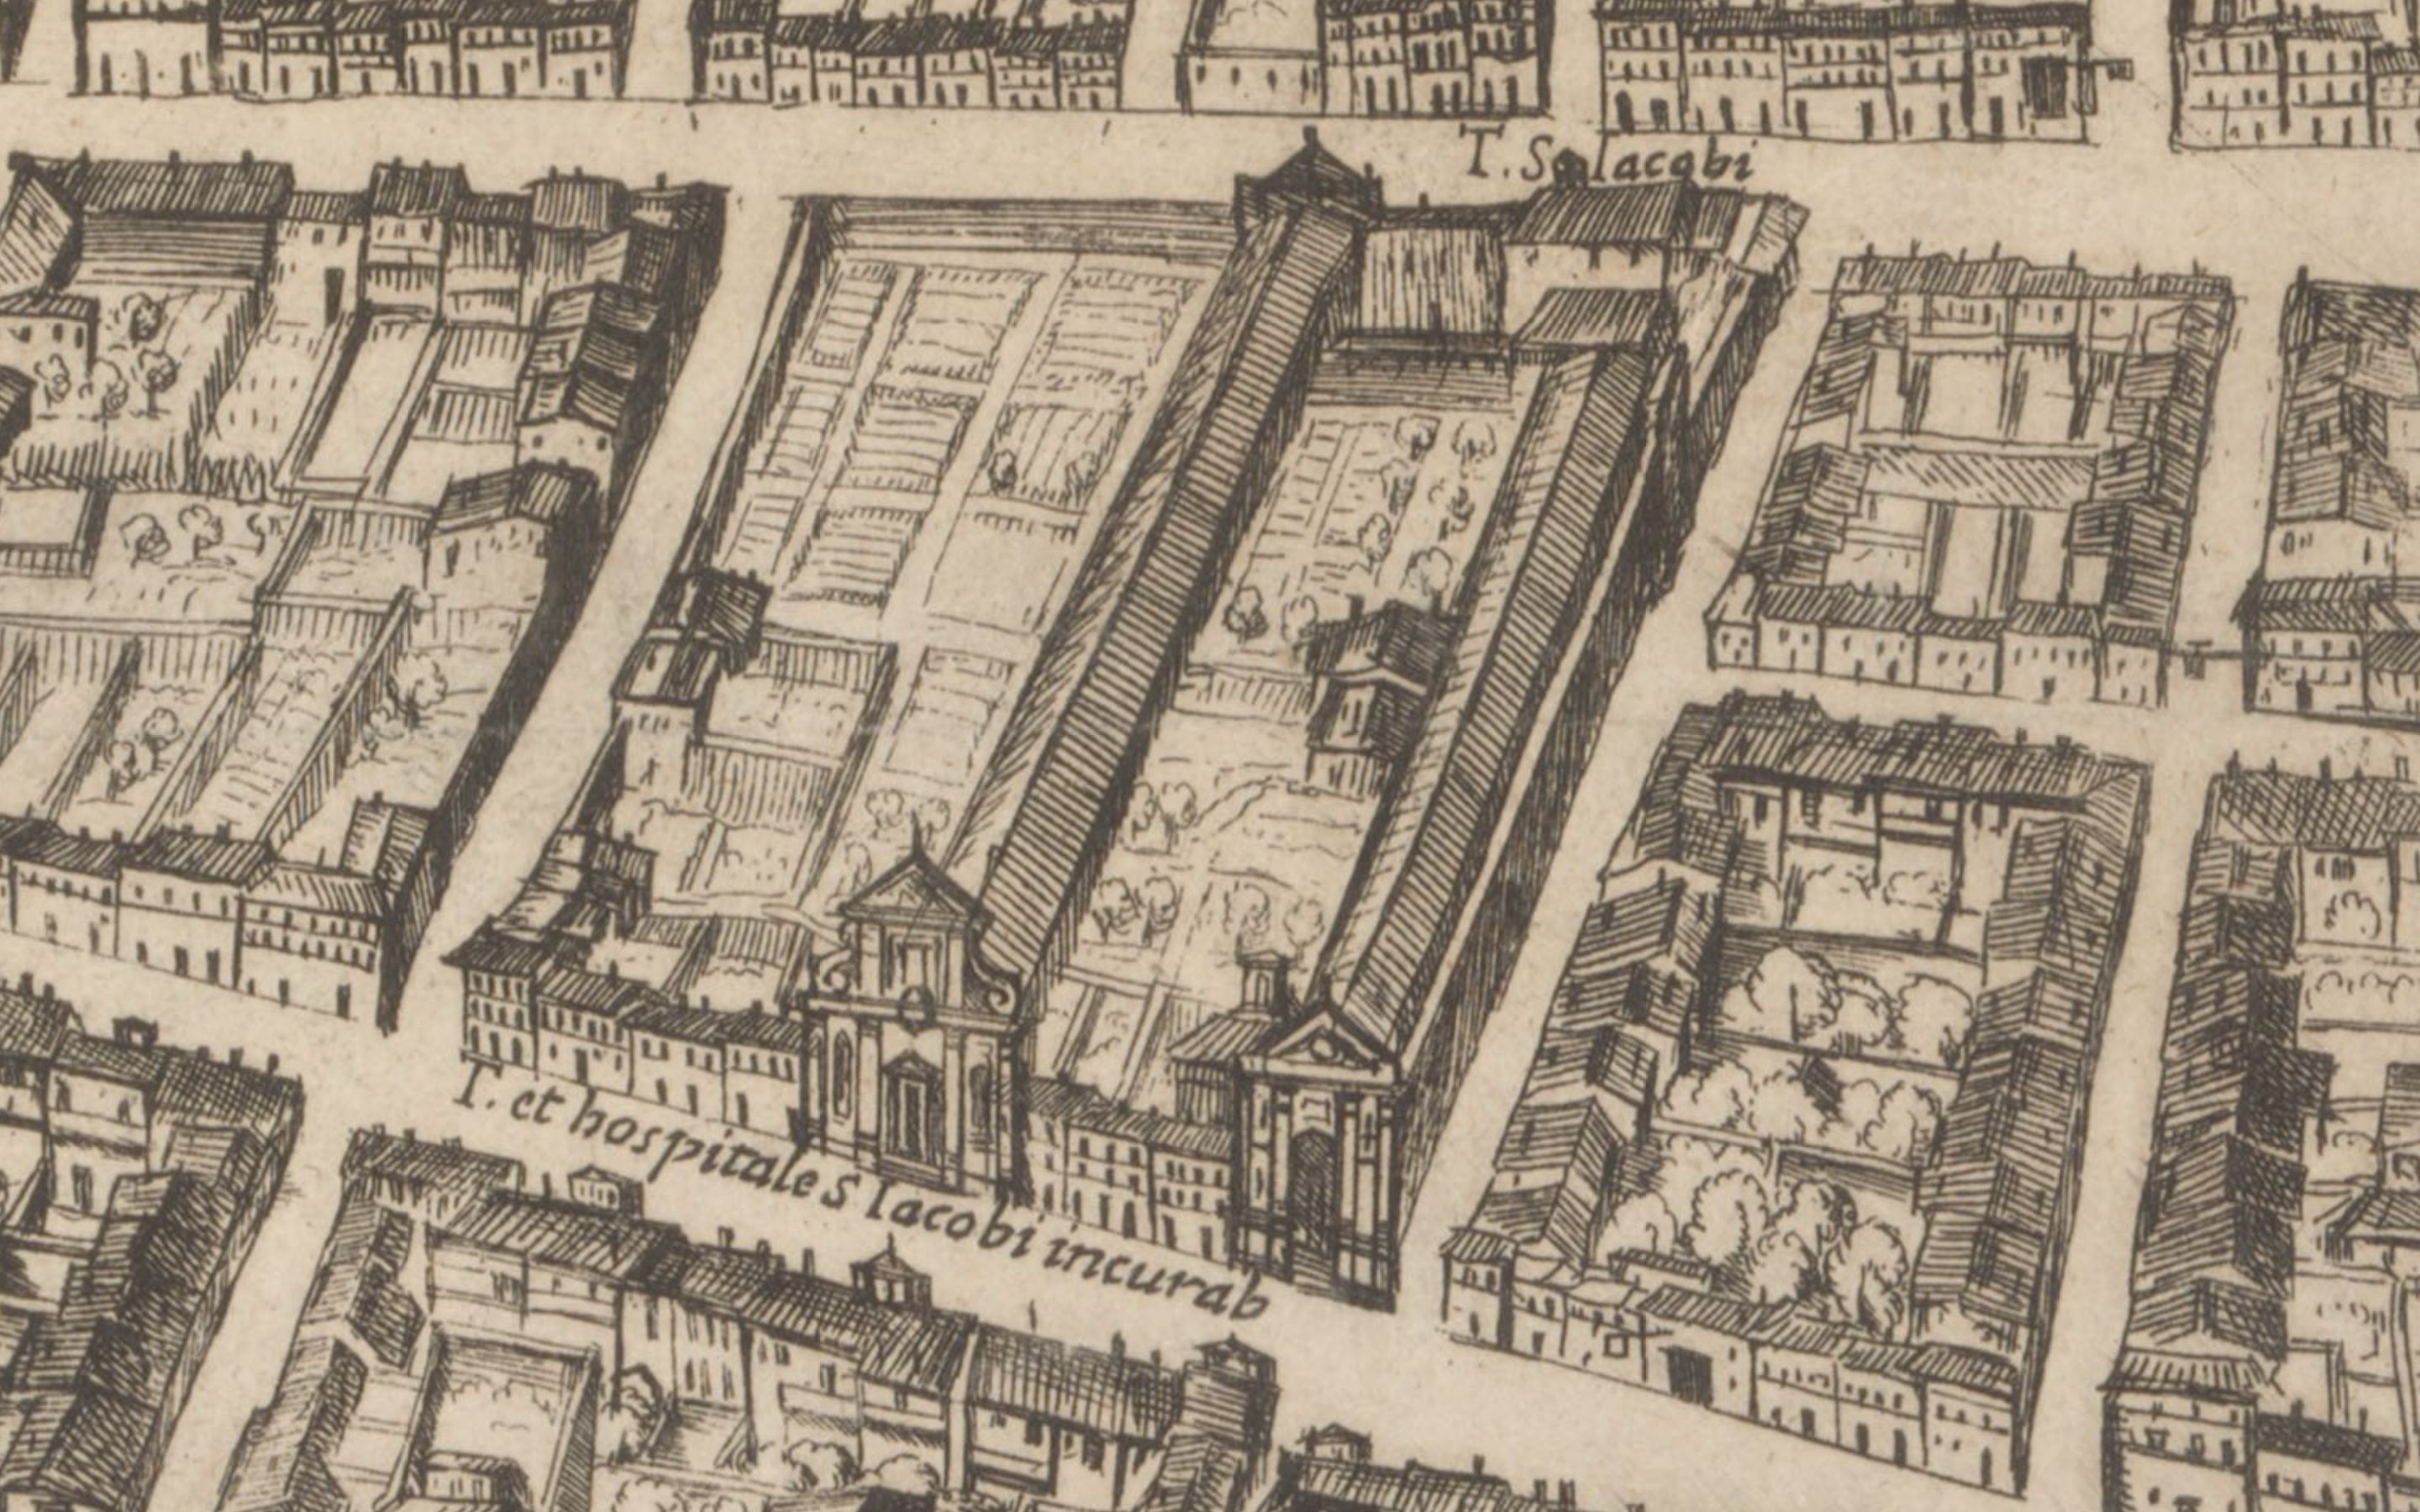 Detail from Tempesta's 1593 map of Rome.